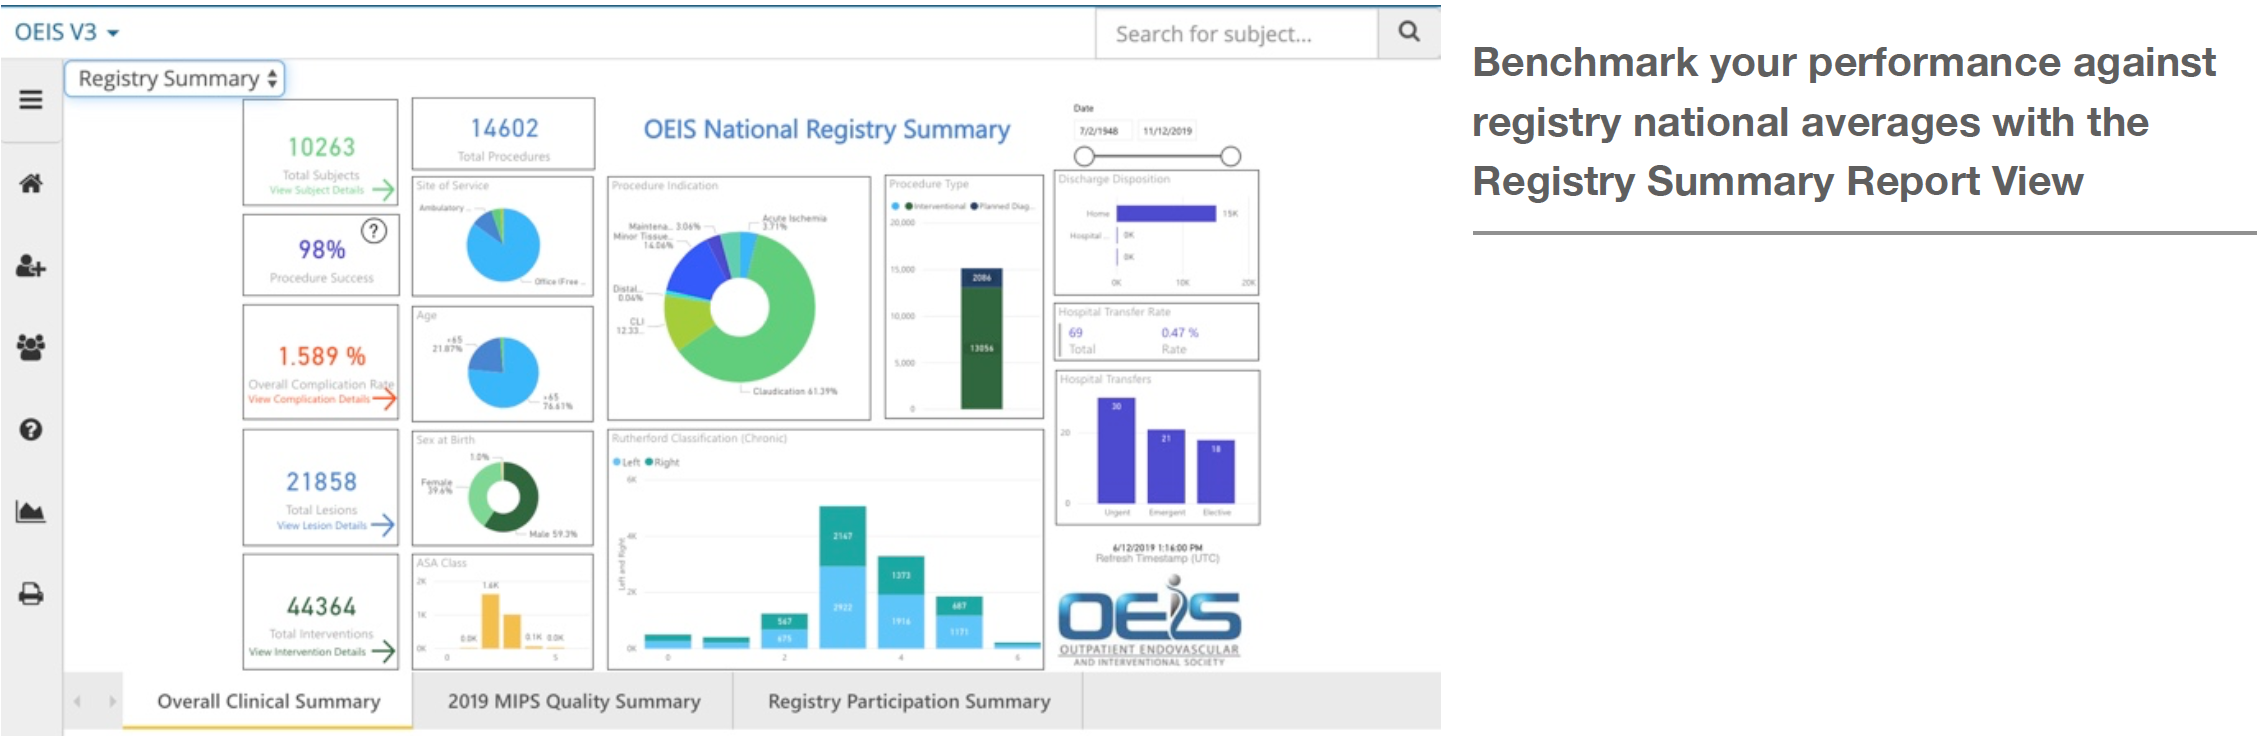 Registry Summary Report for the OEIS National Registry.